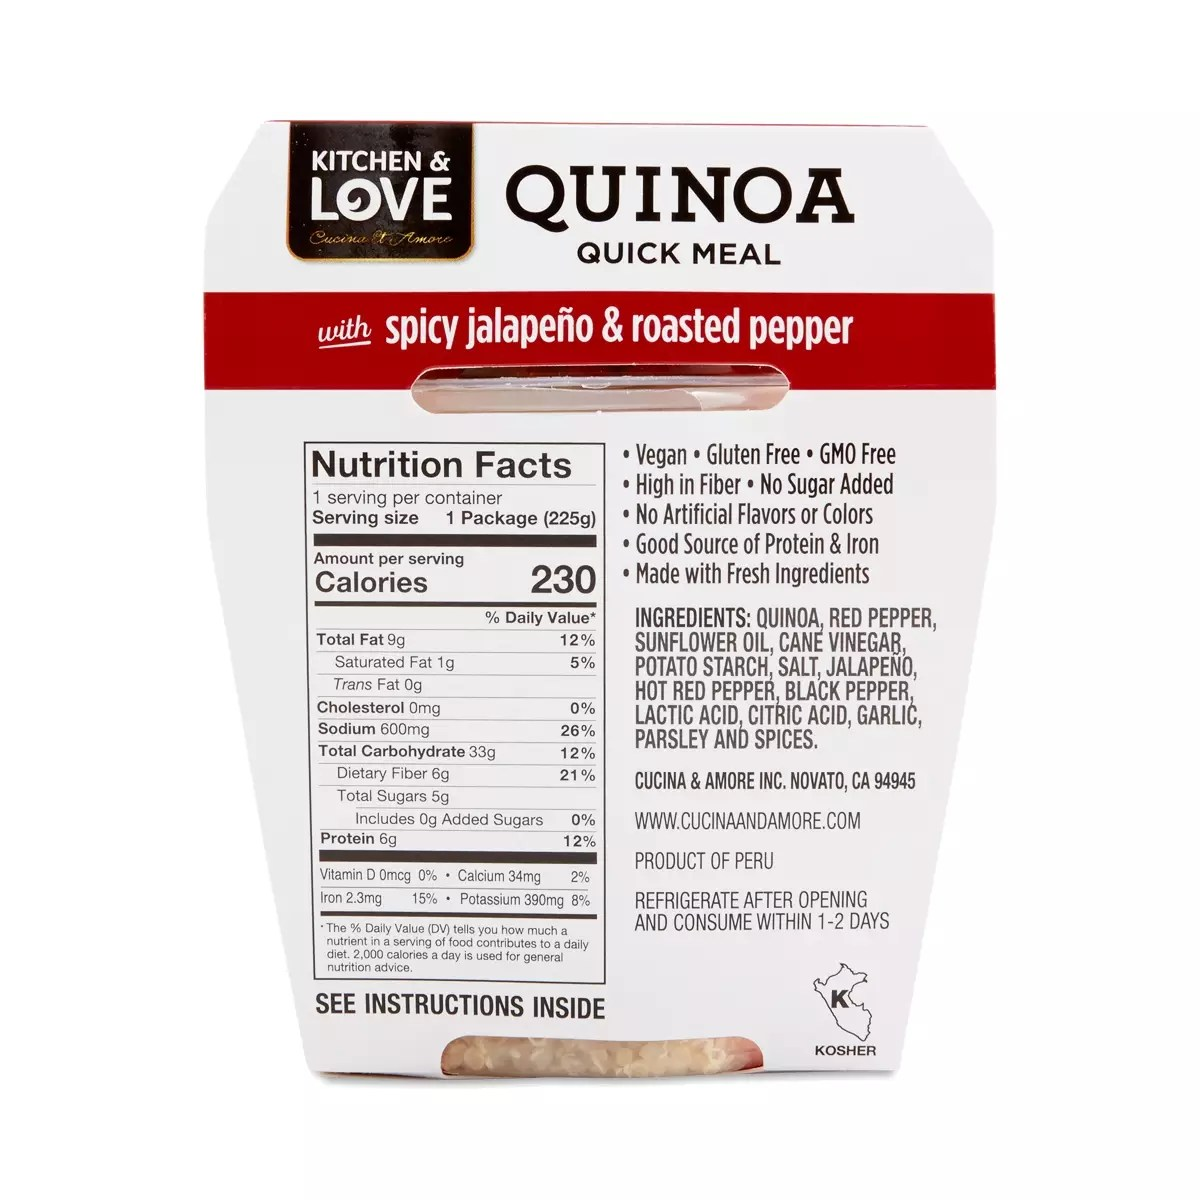 Cucina And Amore Quinoa Review Spicy Jalapeno Roasted Peppers Quinoa Meal